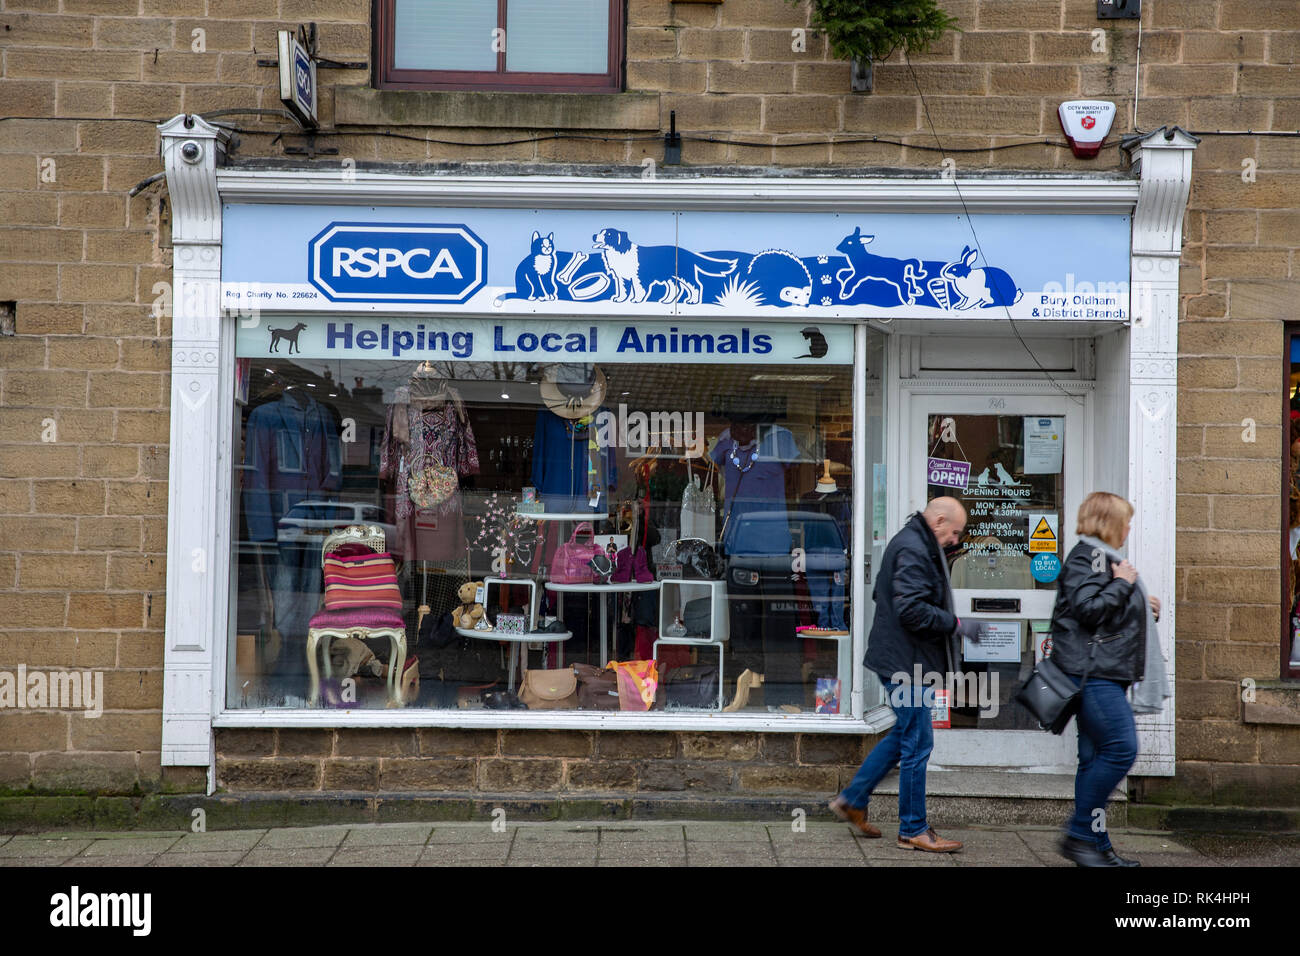 RSPCA animal charity shop in the village of Ramsbottom,Lancashire,England - Stock Image